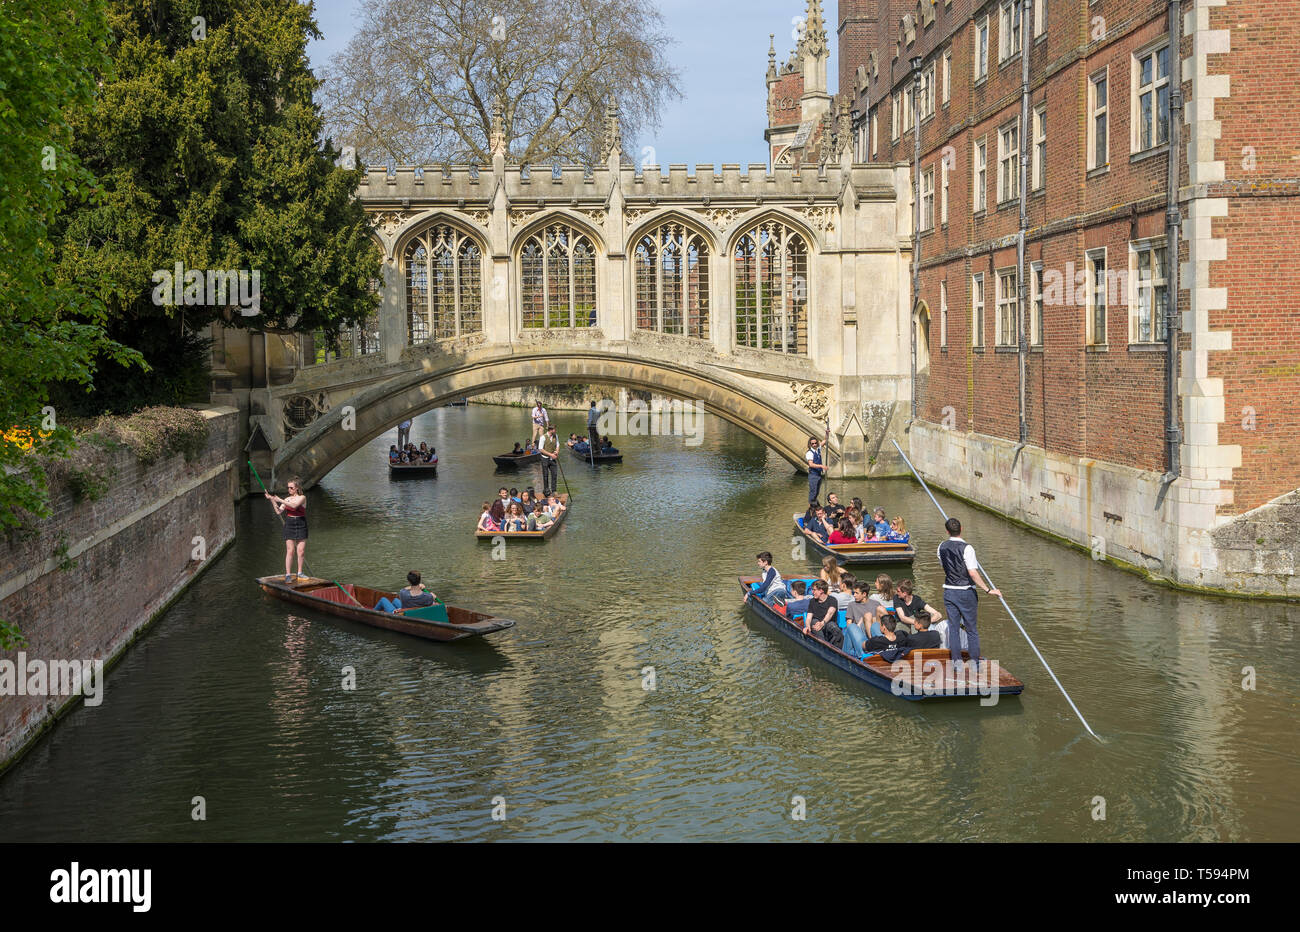 heavy-traffic-of-punts-at-bridge-of-sighs-st-johns-college-cambridge-2019-T594PM.jpg